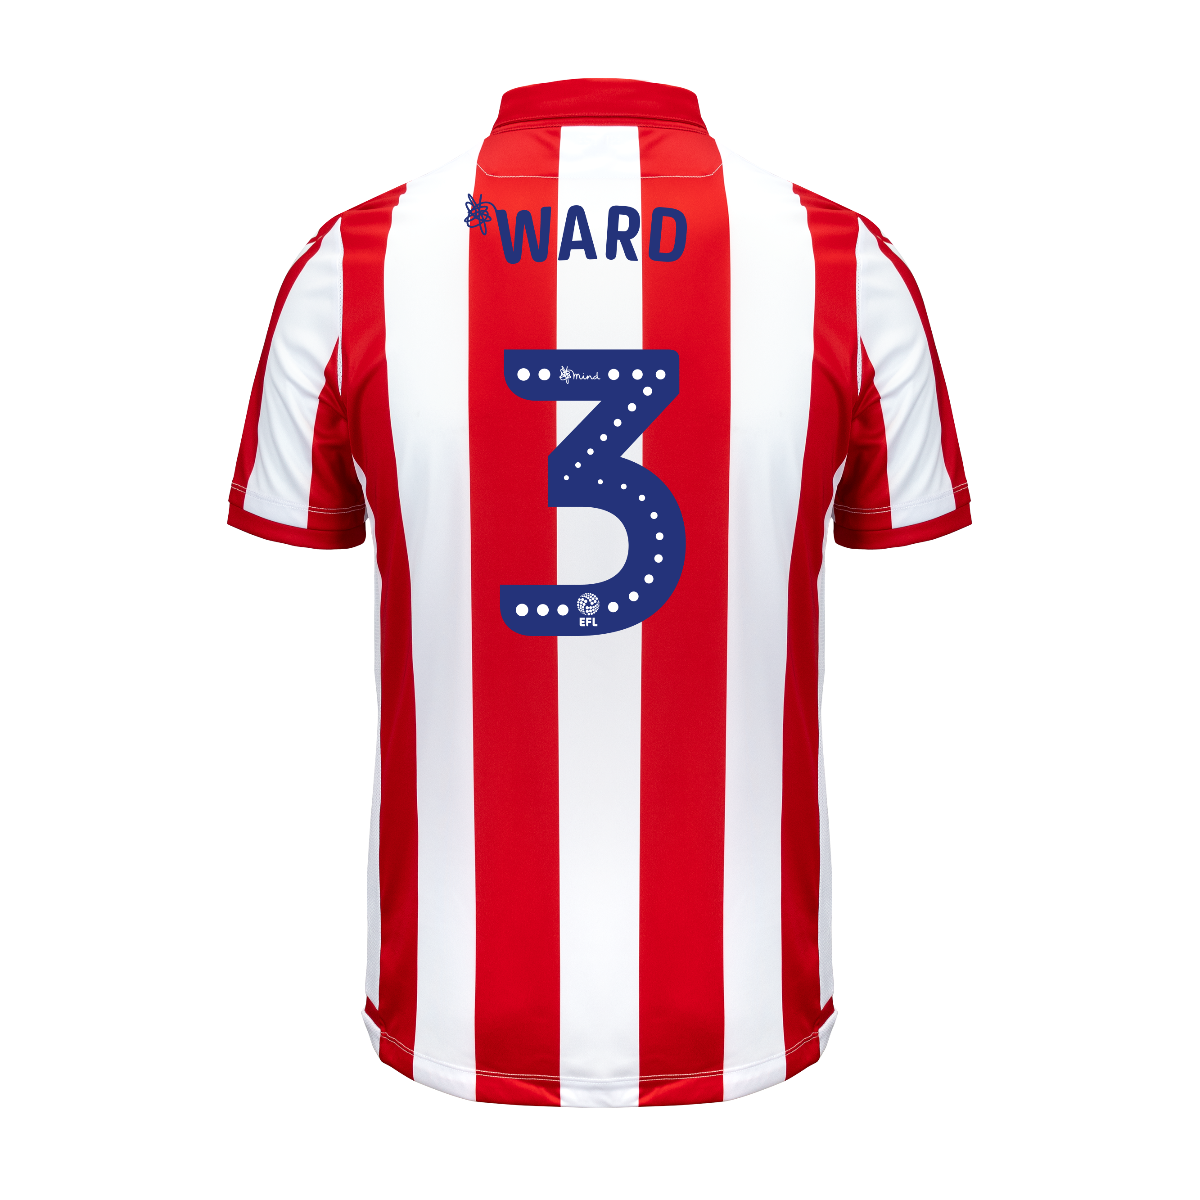 2019/20 Adult Home SS Shirt - Ward